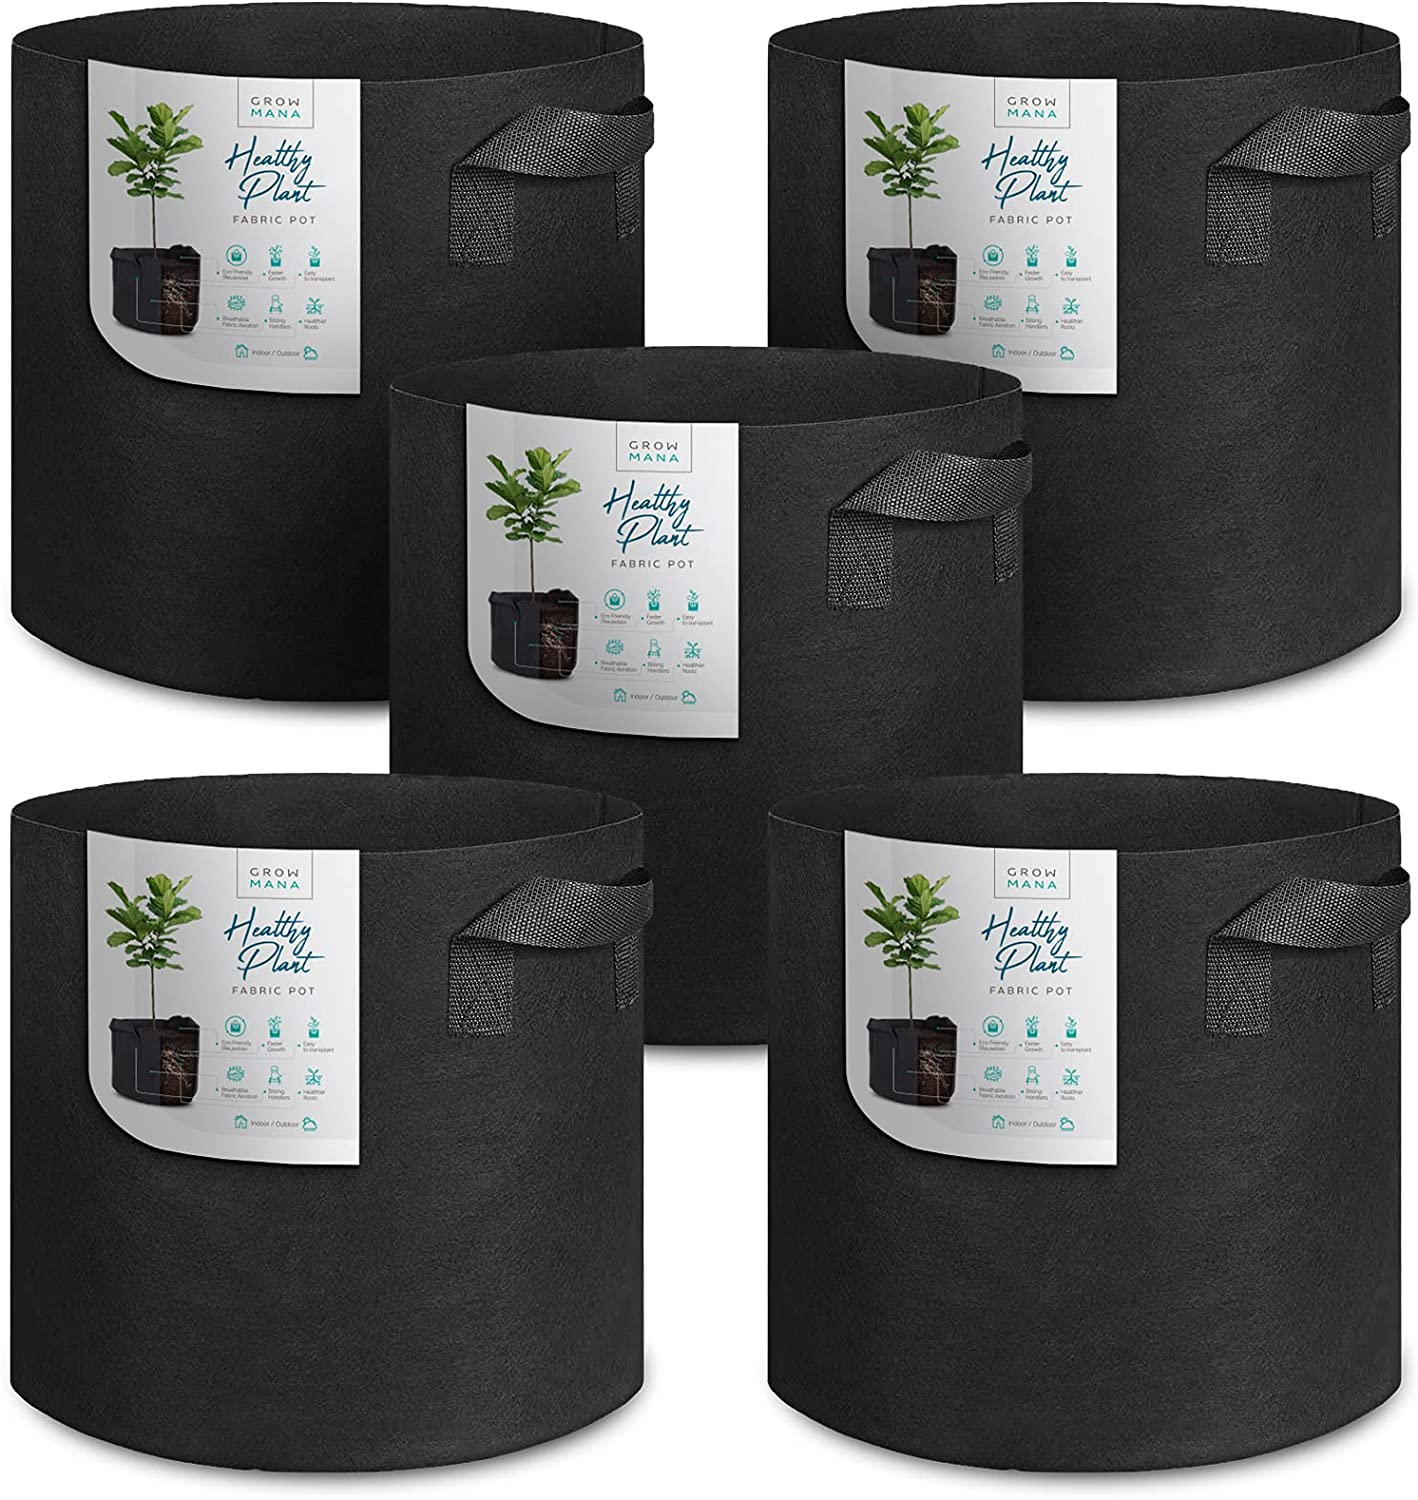 Grow Mana - Growing Bags - Heavy Duty - Thickened Nonwoven - Air Circulation Fabric - Planter Pot - Vegetable - Flower - Plant Grow Bags - Garden and Farm (5 Gallons)